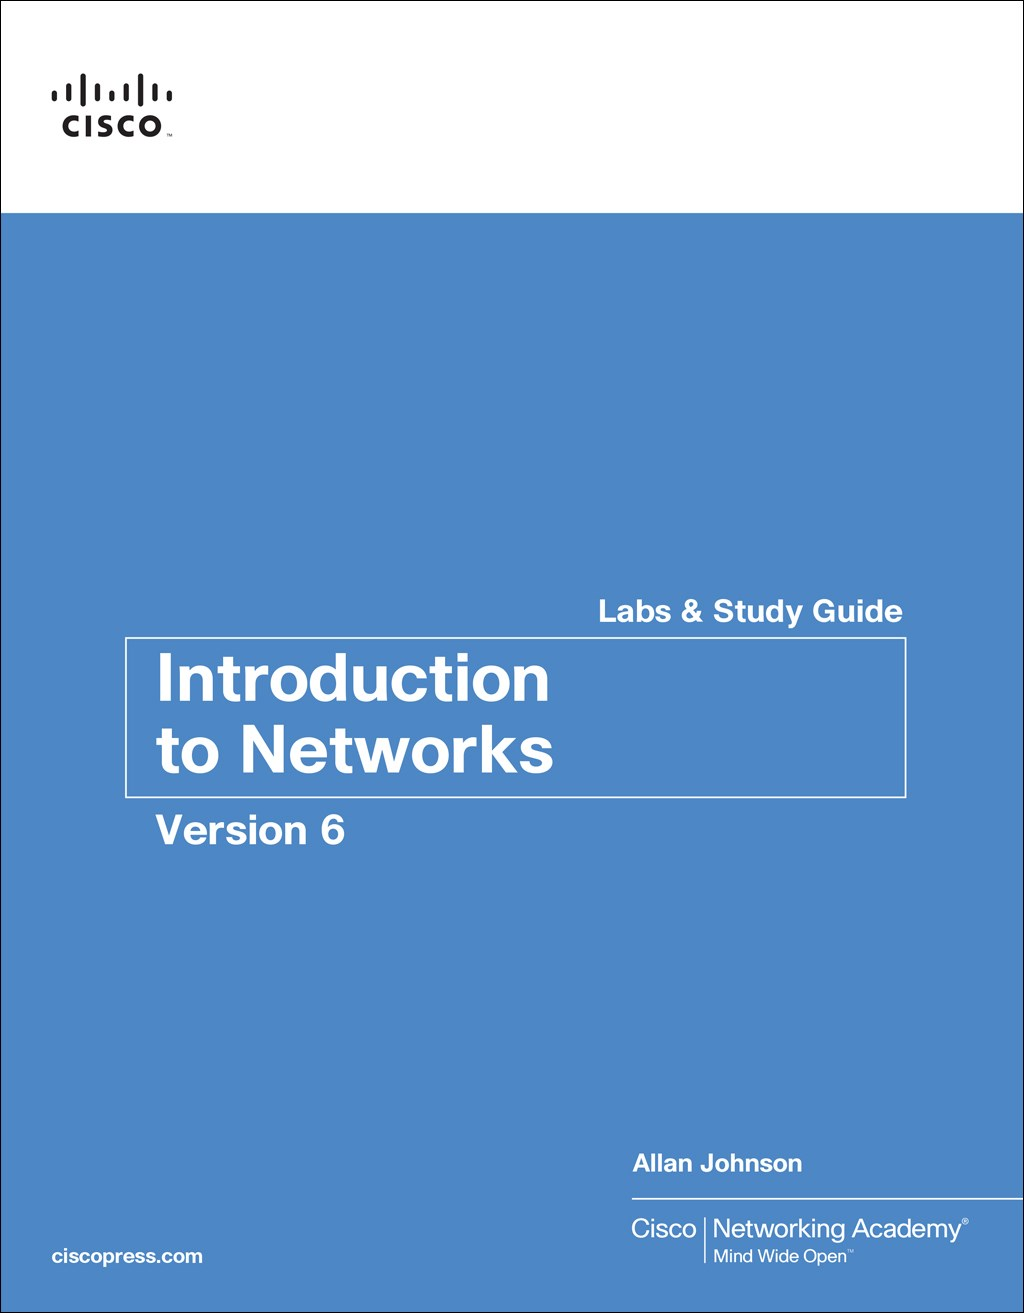 Introduction to Networks v6 Labs & Study Guide